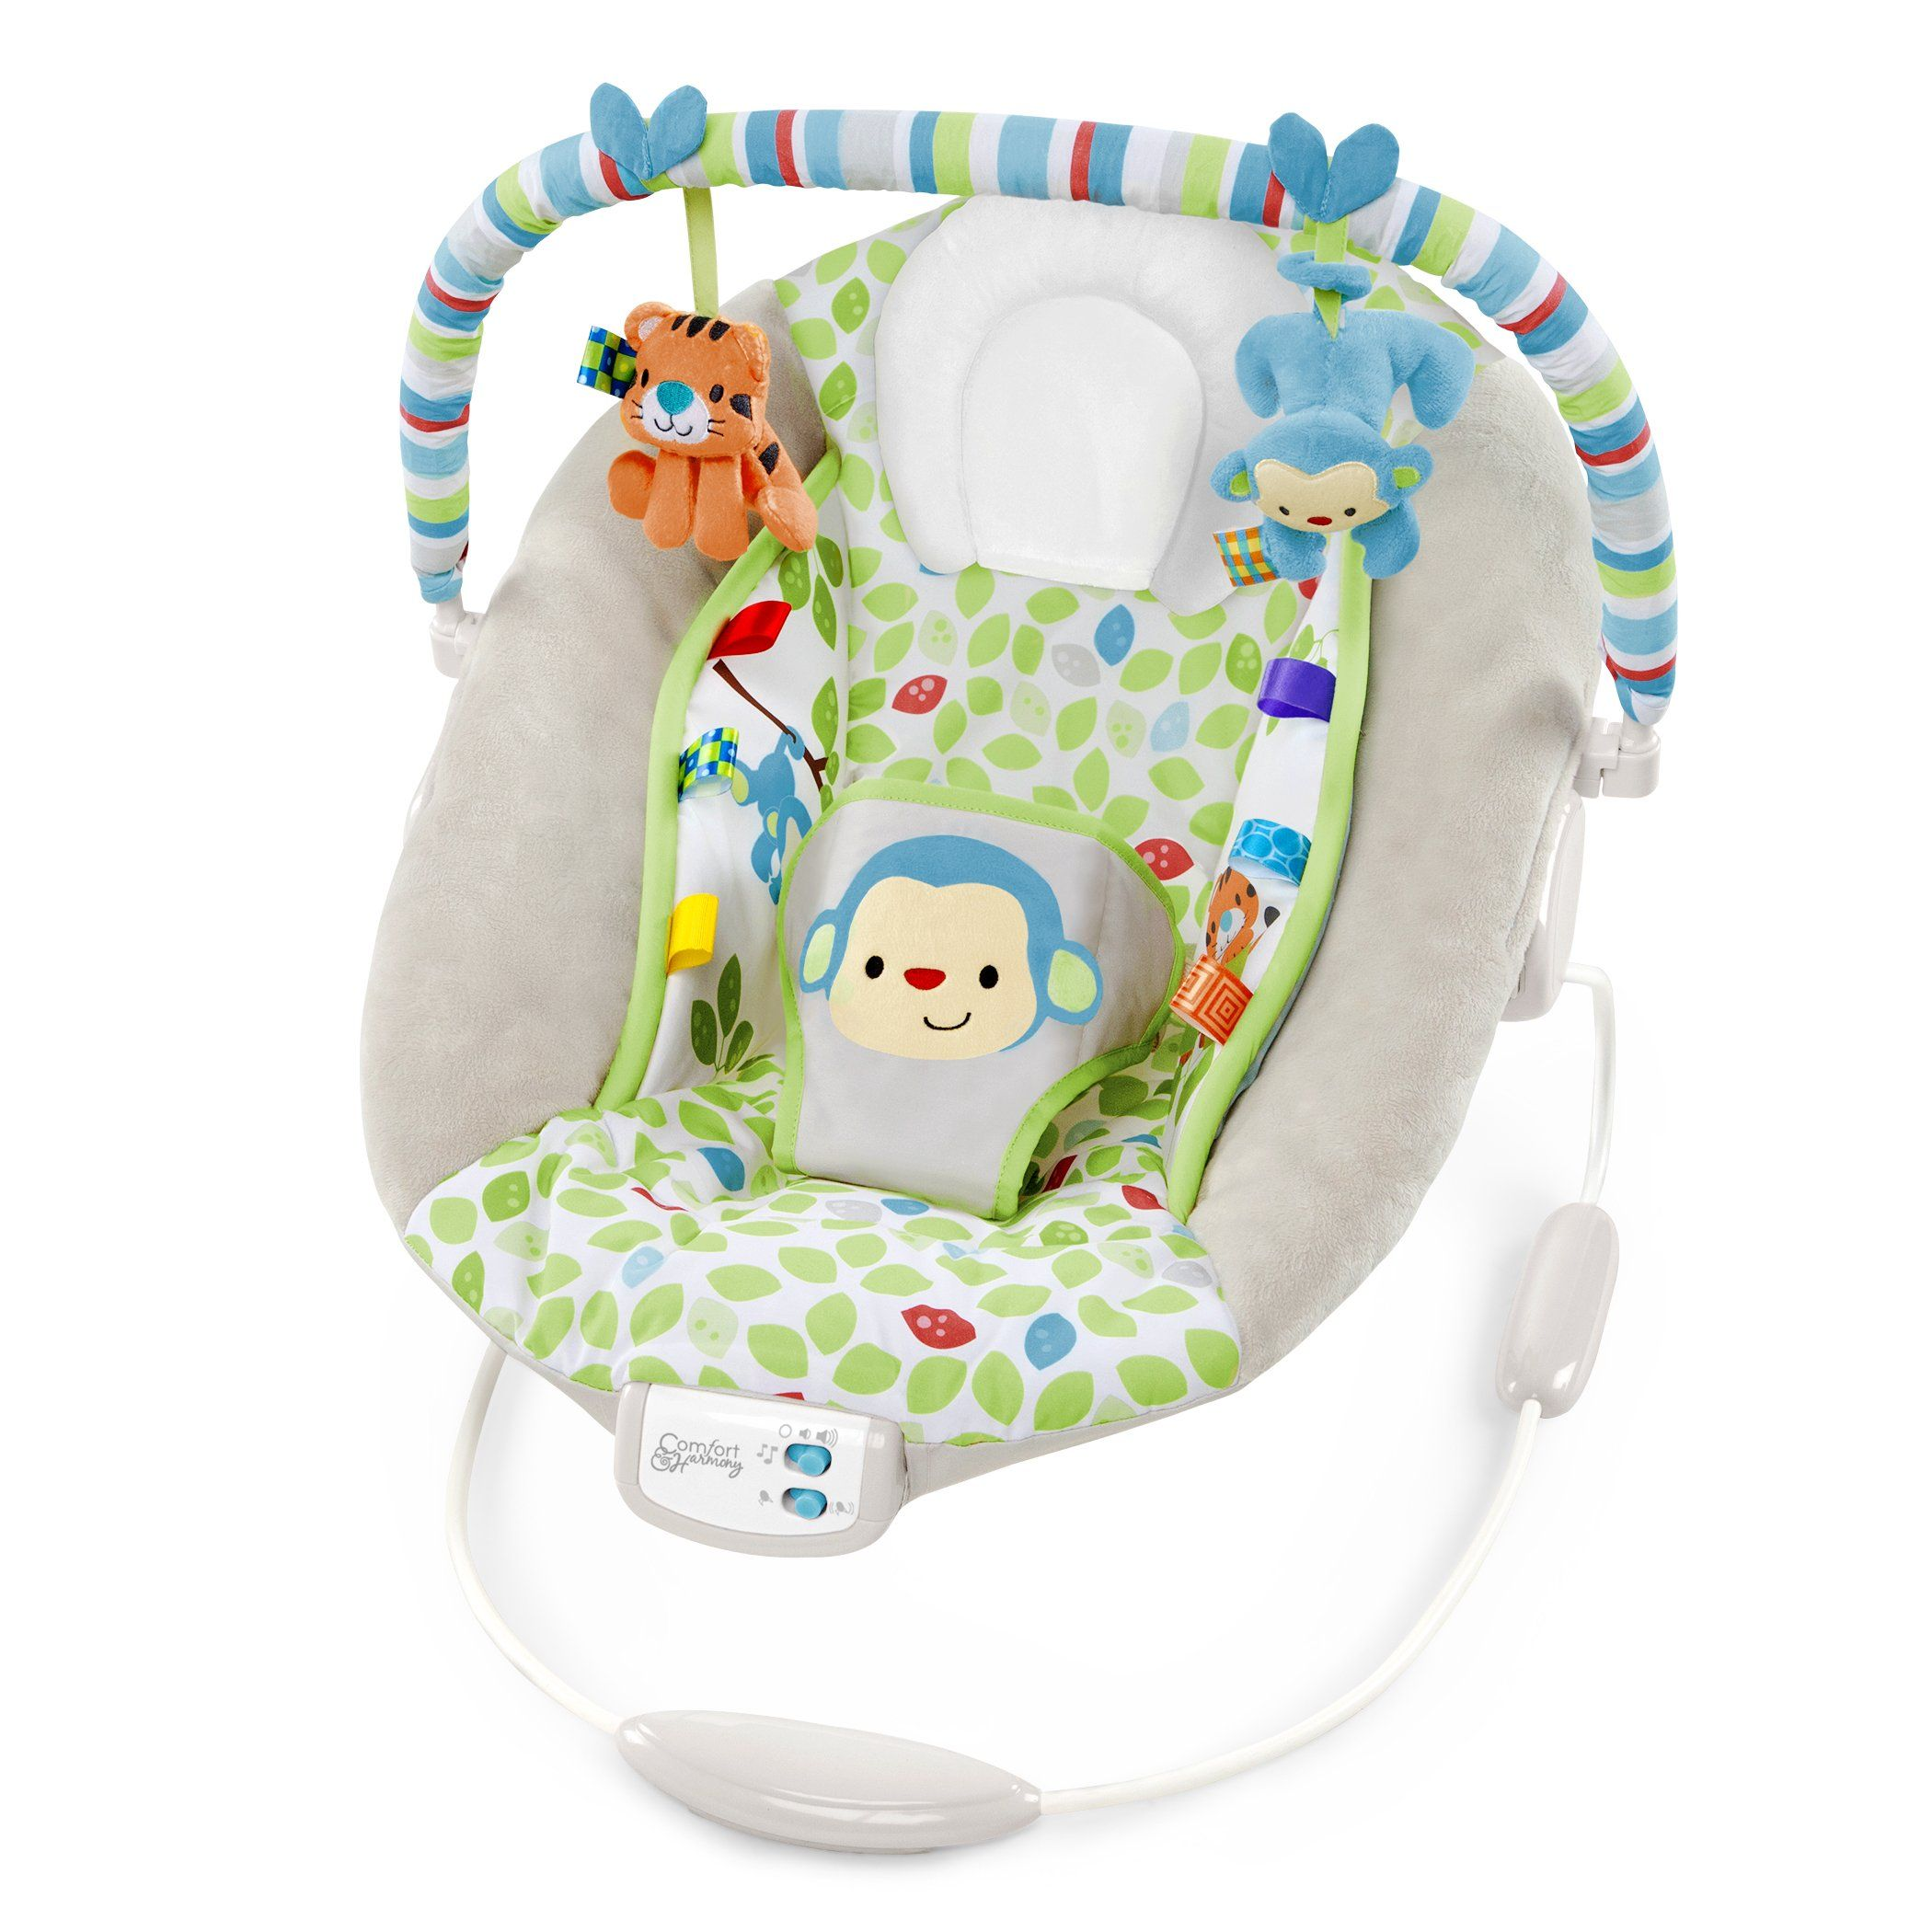 Comfort Harmony Cradling Bouncer Merry Monkeys Taggies Tags Engage Baby And Provide Comfort And Security Plu Baby Bouncer Baby Rockers Bouncer Baby Rocker